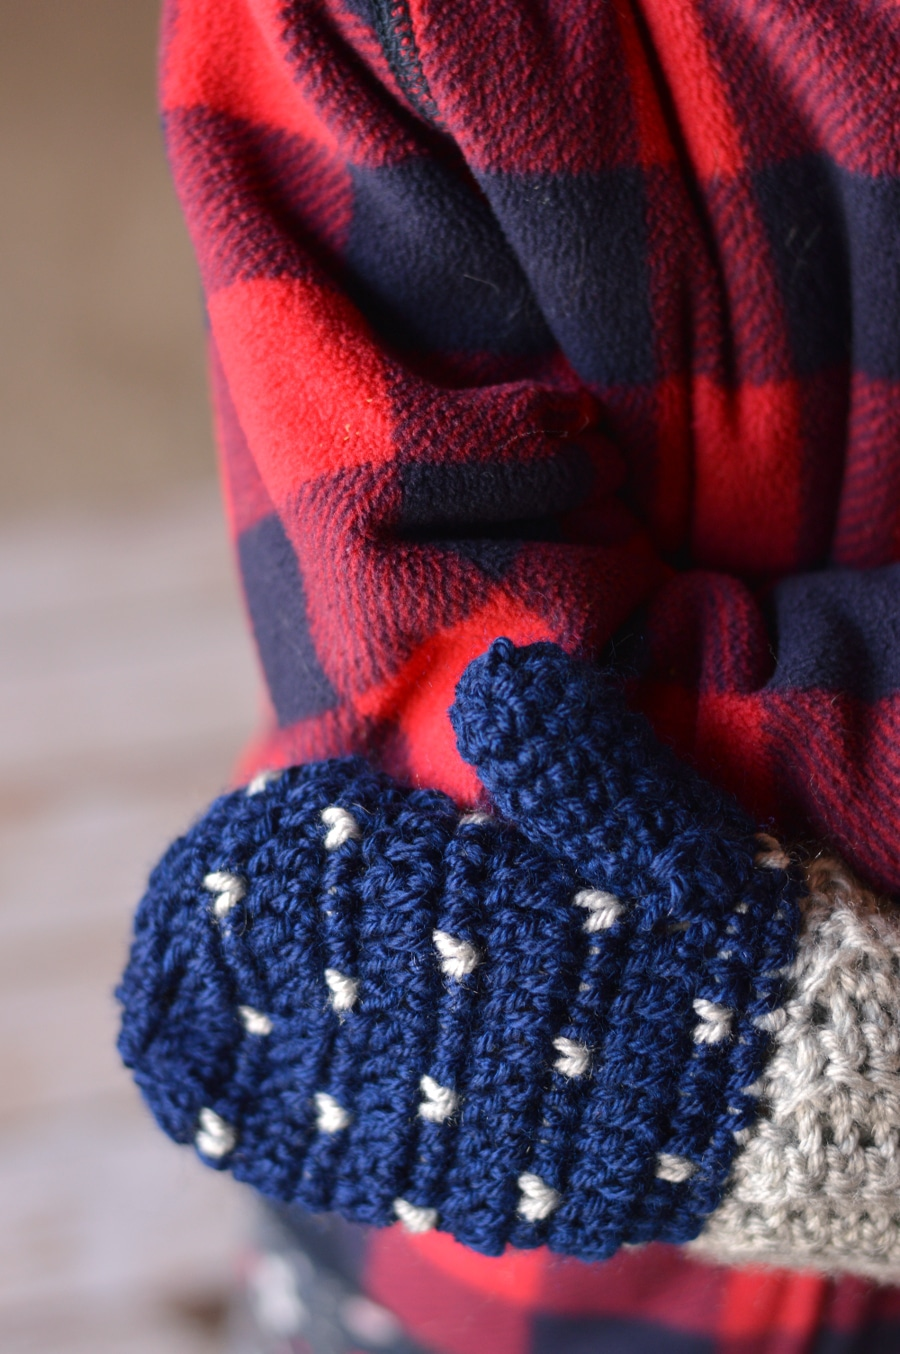 Snowfall Crochet Mittens - Whistle and Ivy